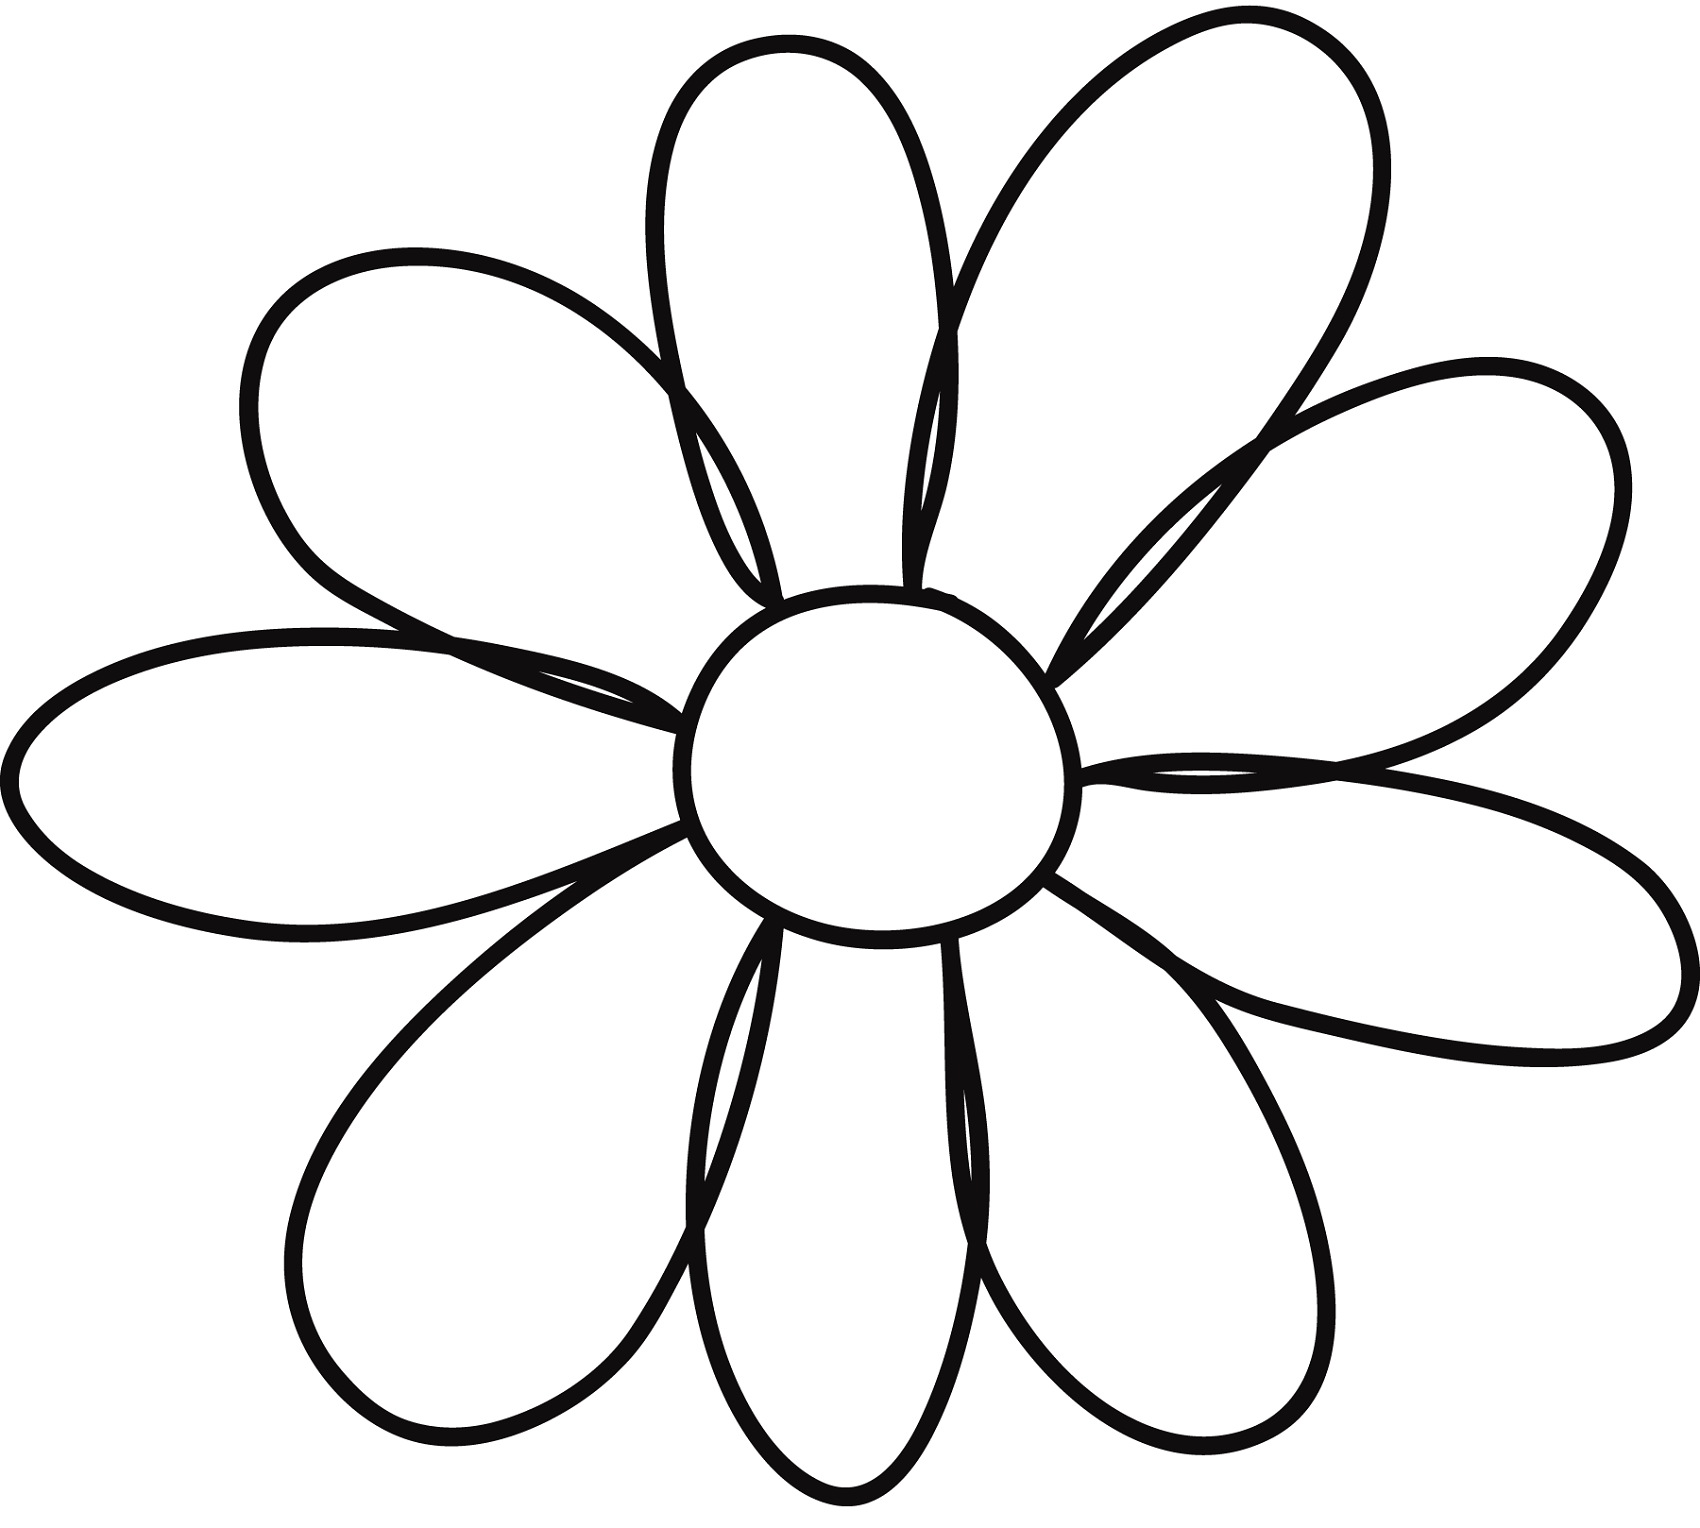 colouring flowers pictures cartoon flower outline 20 free cliparts download images flowers pictures colouring